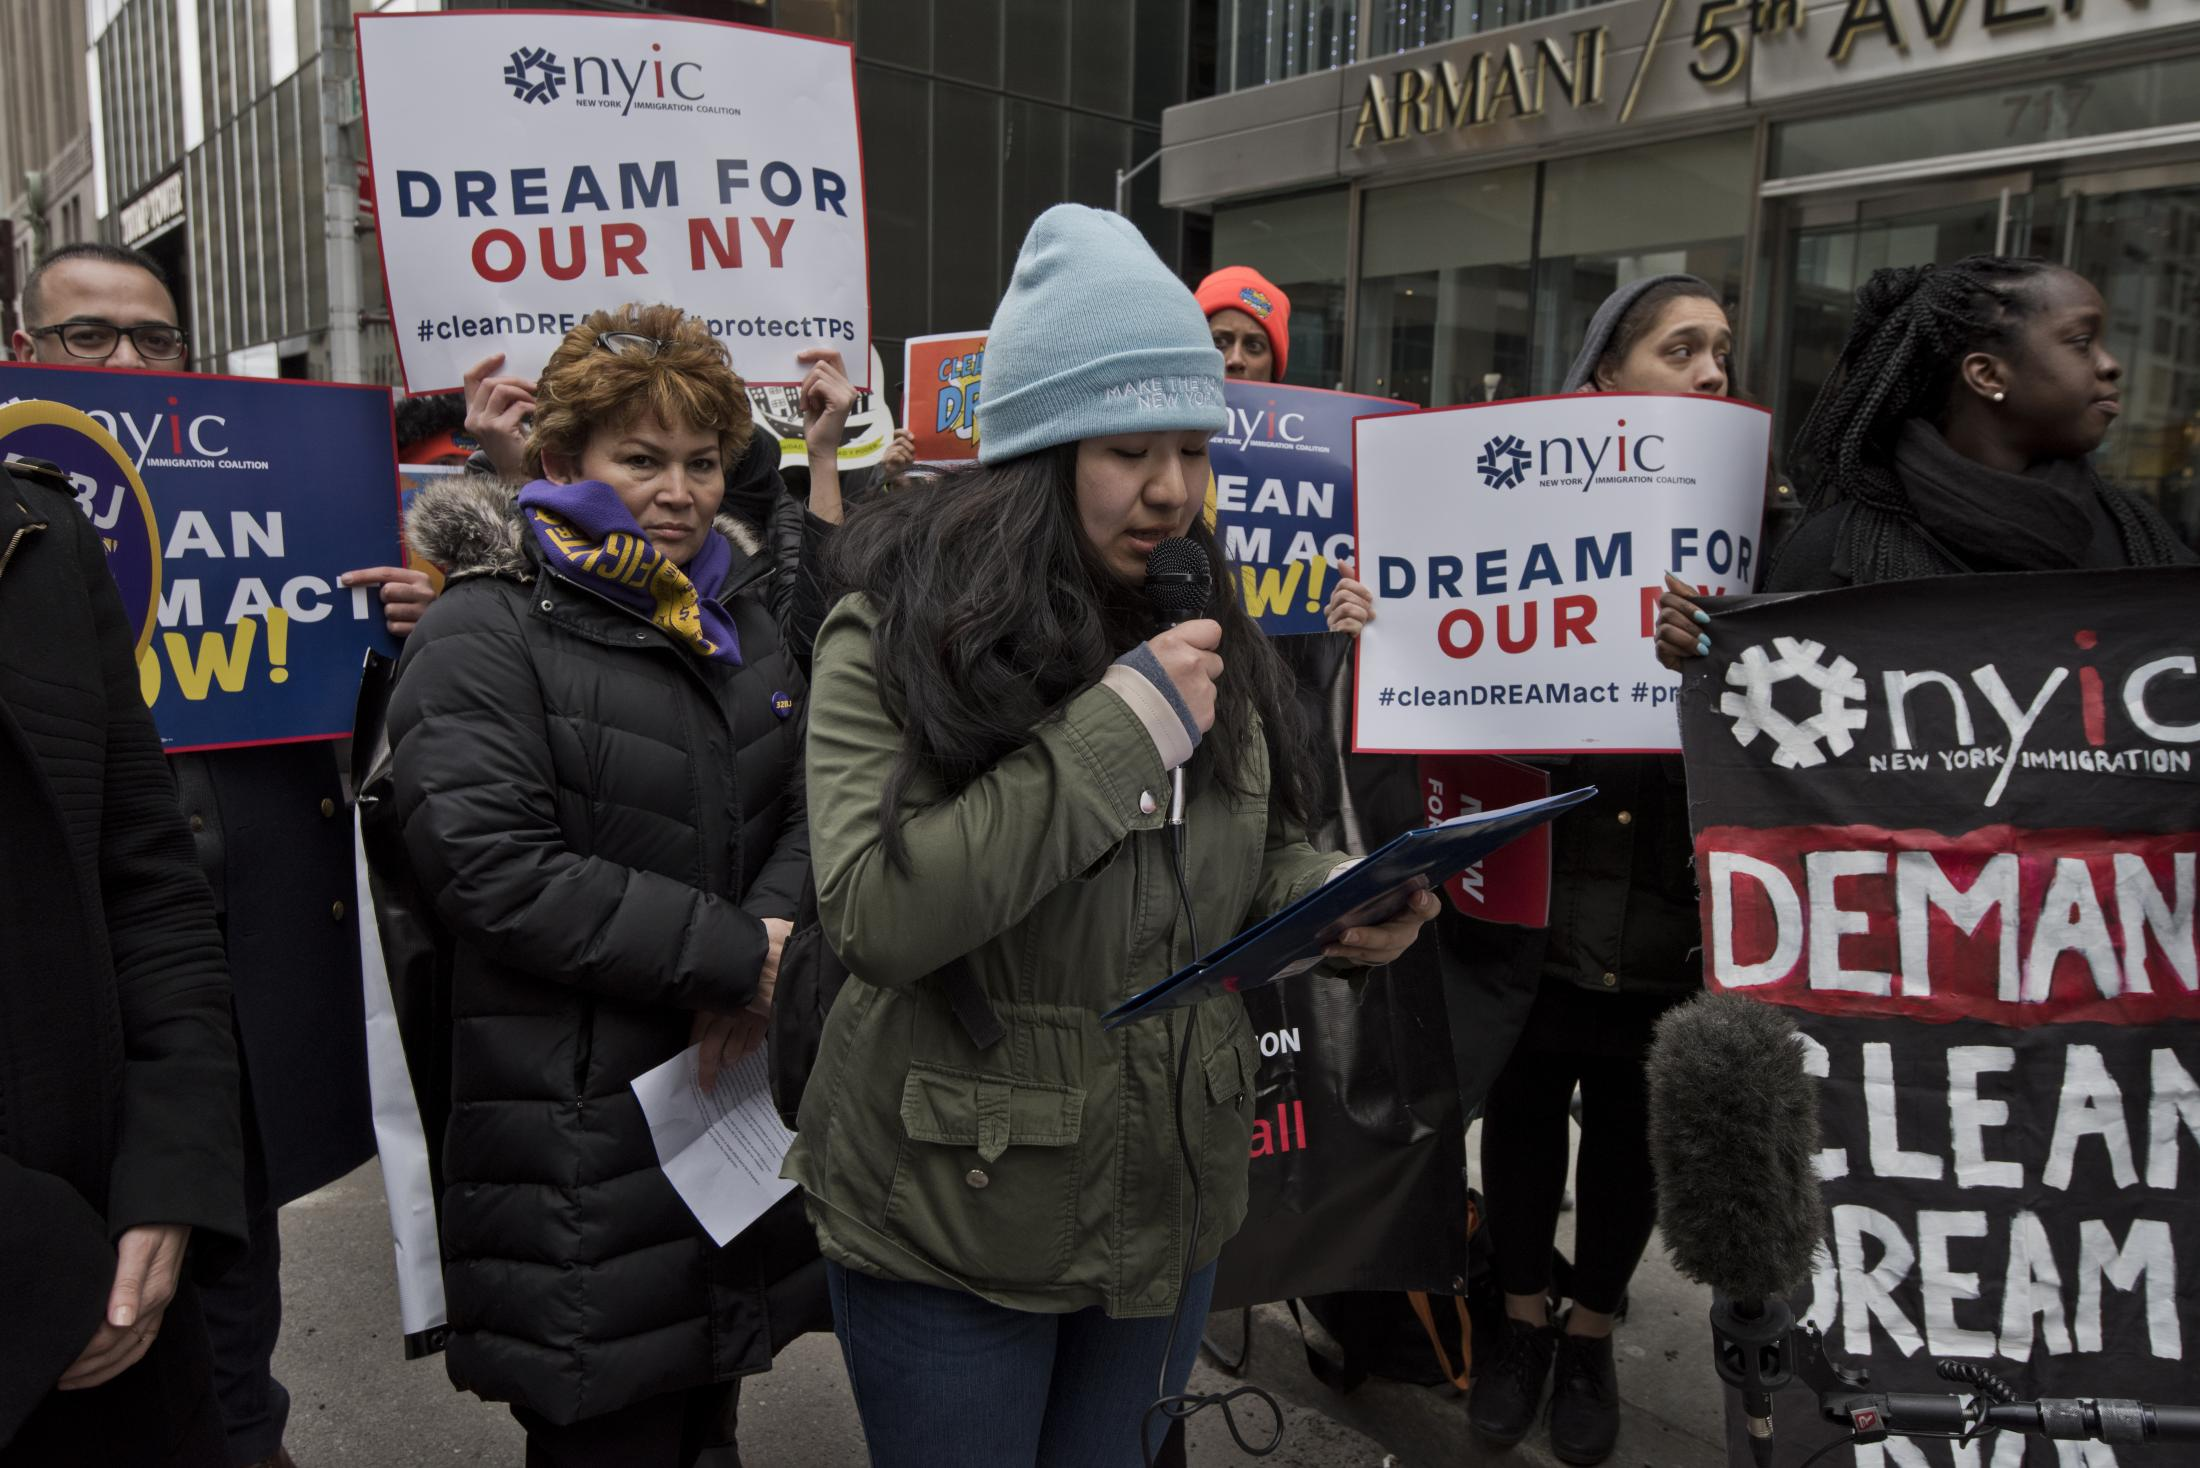 Lizbeth in a rally that supports Dreamers in front of Trump tower in 5 ave in Manhattan on March 3, 2018